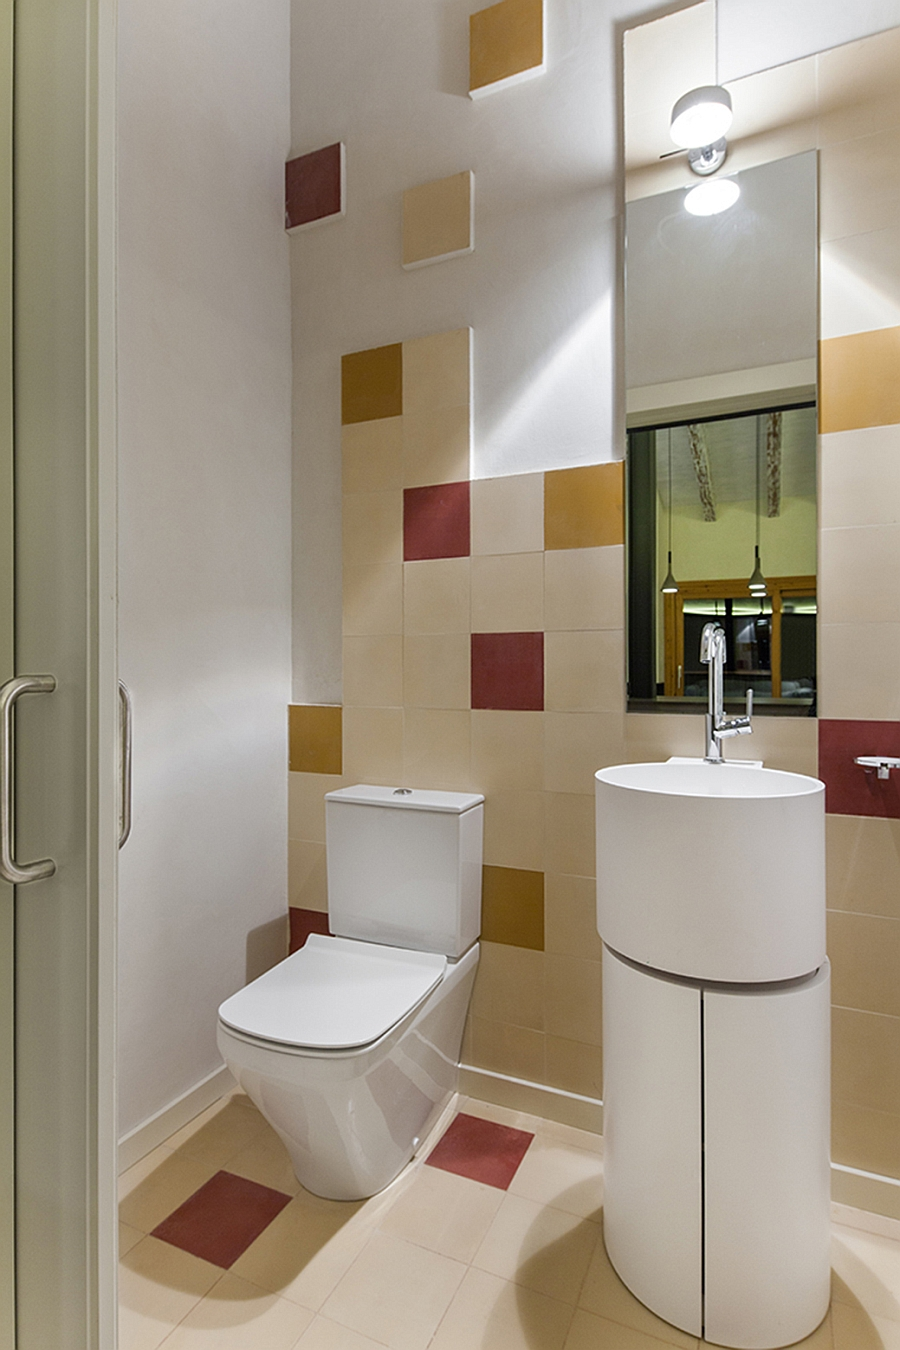 Small-bathroom-with-fun-use-of-red-and-yellow-tiles